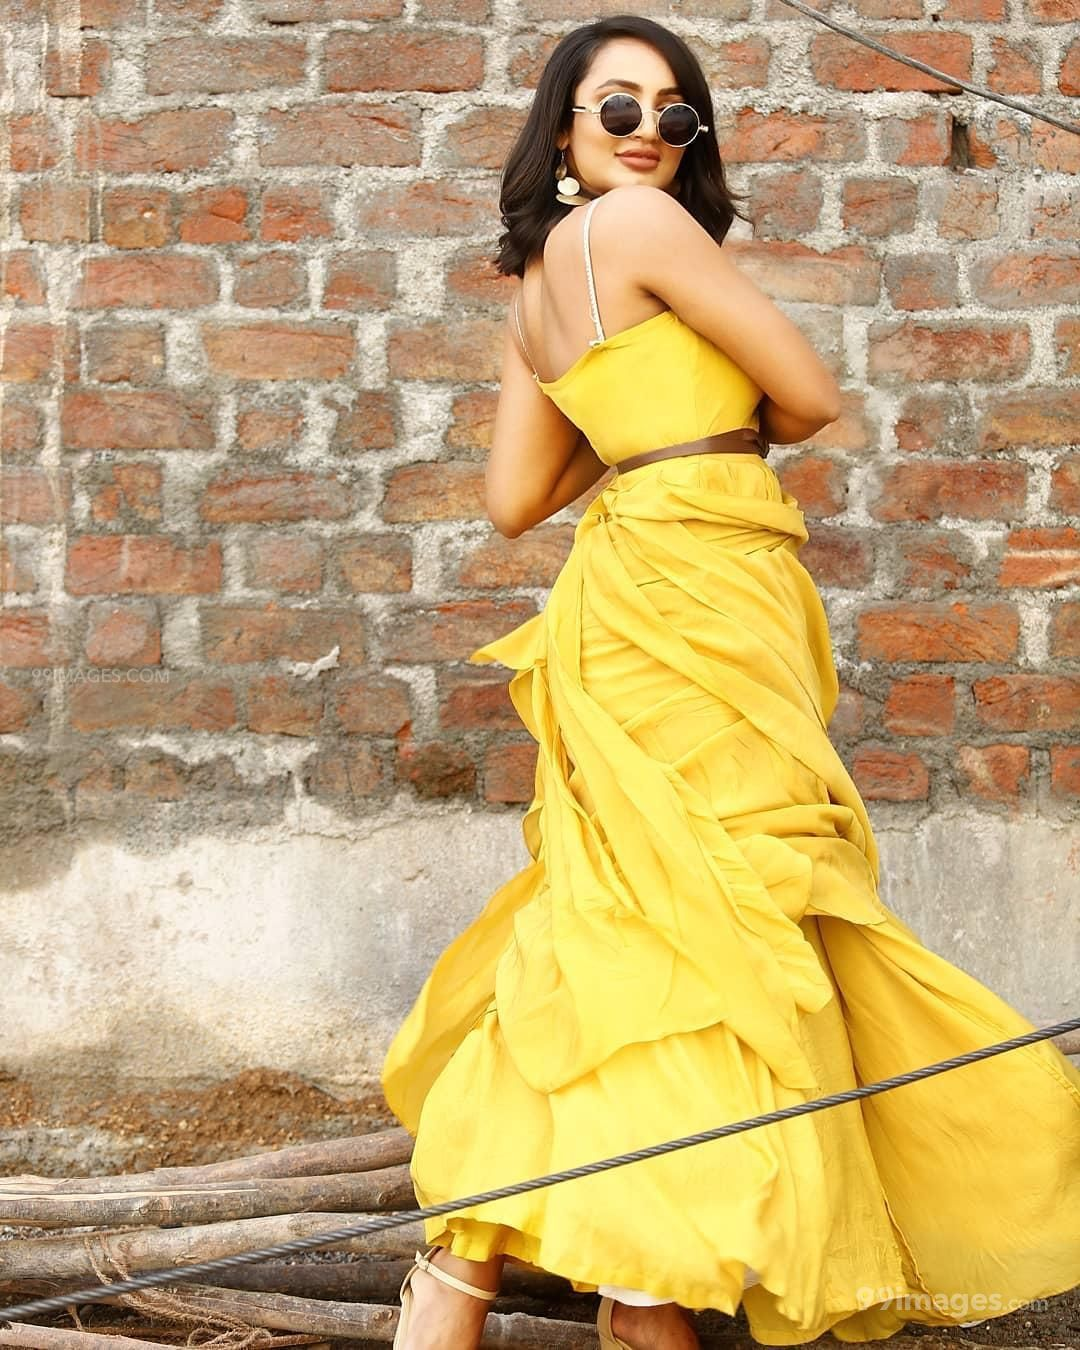 Tejaswi Madivada Hot HD Photos & Wallpapers for mobile Download, WhatsApp DP (1080p) (286303) - Tejaswi Madivada